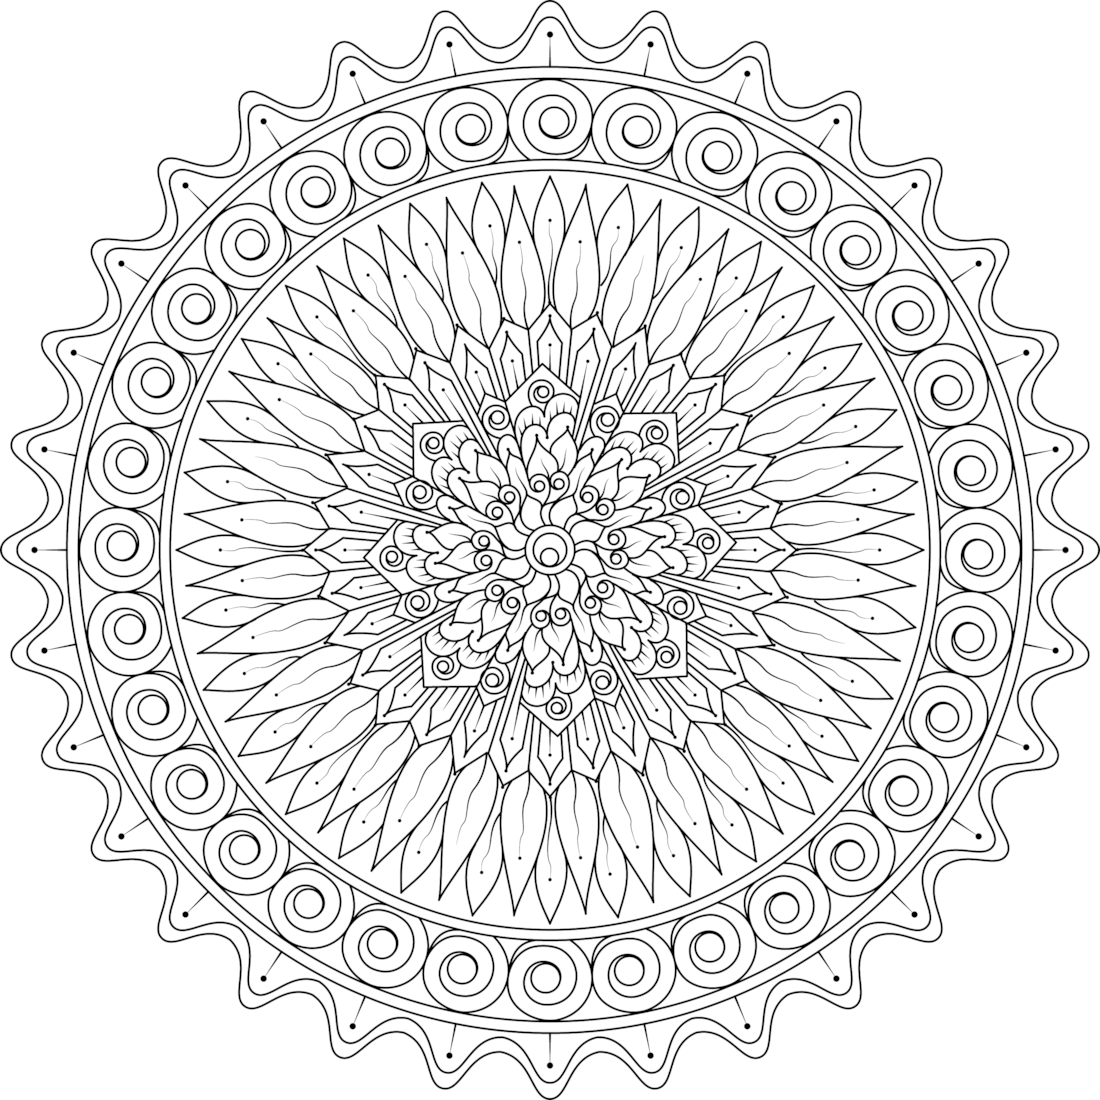 Kindled Love Mandala Coloring Page By Varda K. - (mondaymandala ...